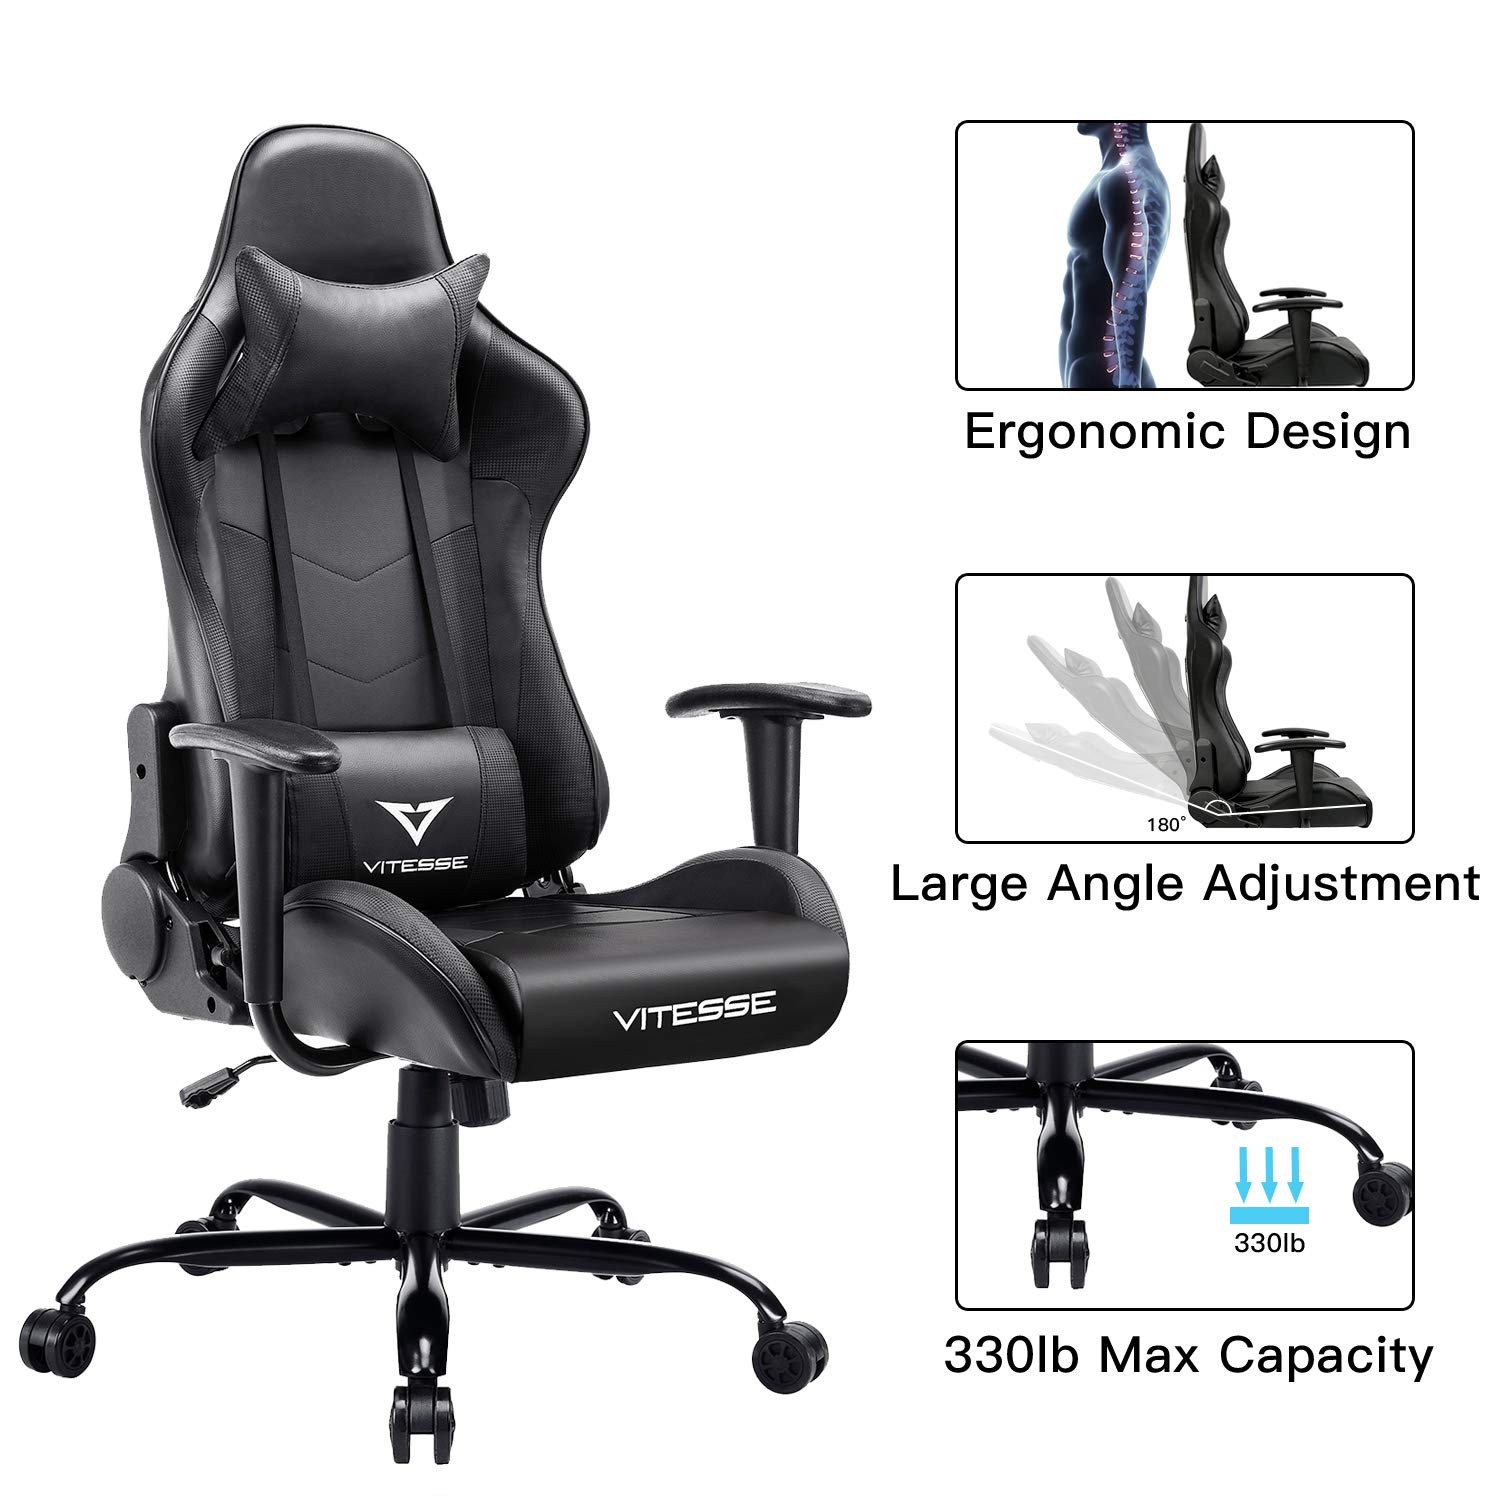 VIT Computer Gaming Chair Racing Style High-Back PC Chair Ergonomic Office Desk Chair Swivel E-Sports Leather Chair with Lumbar Support and Headrest Carbon Fiber Black